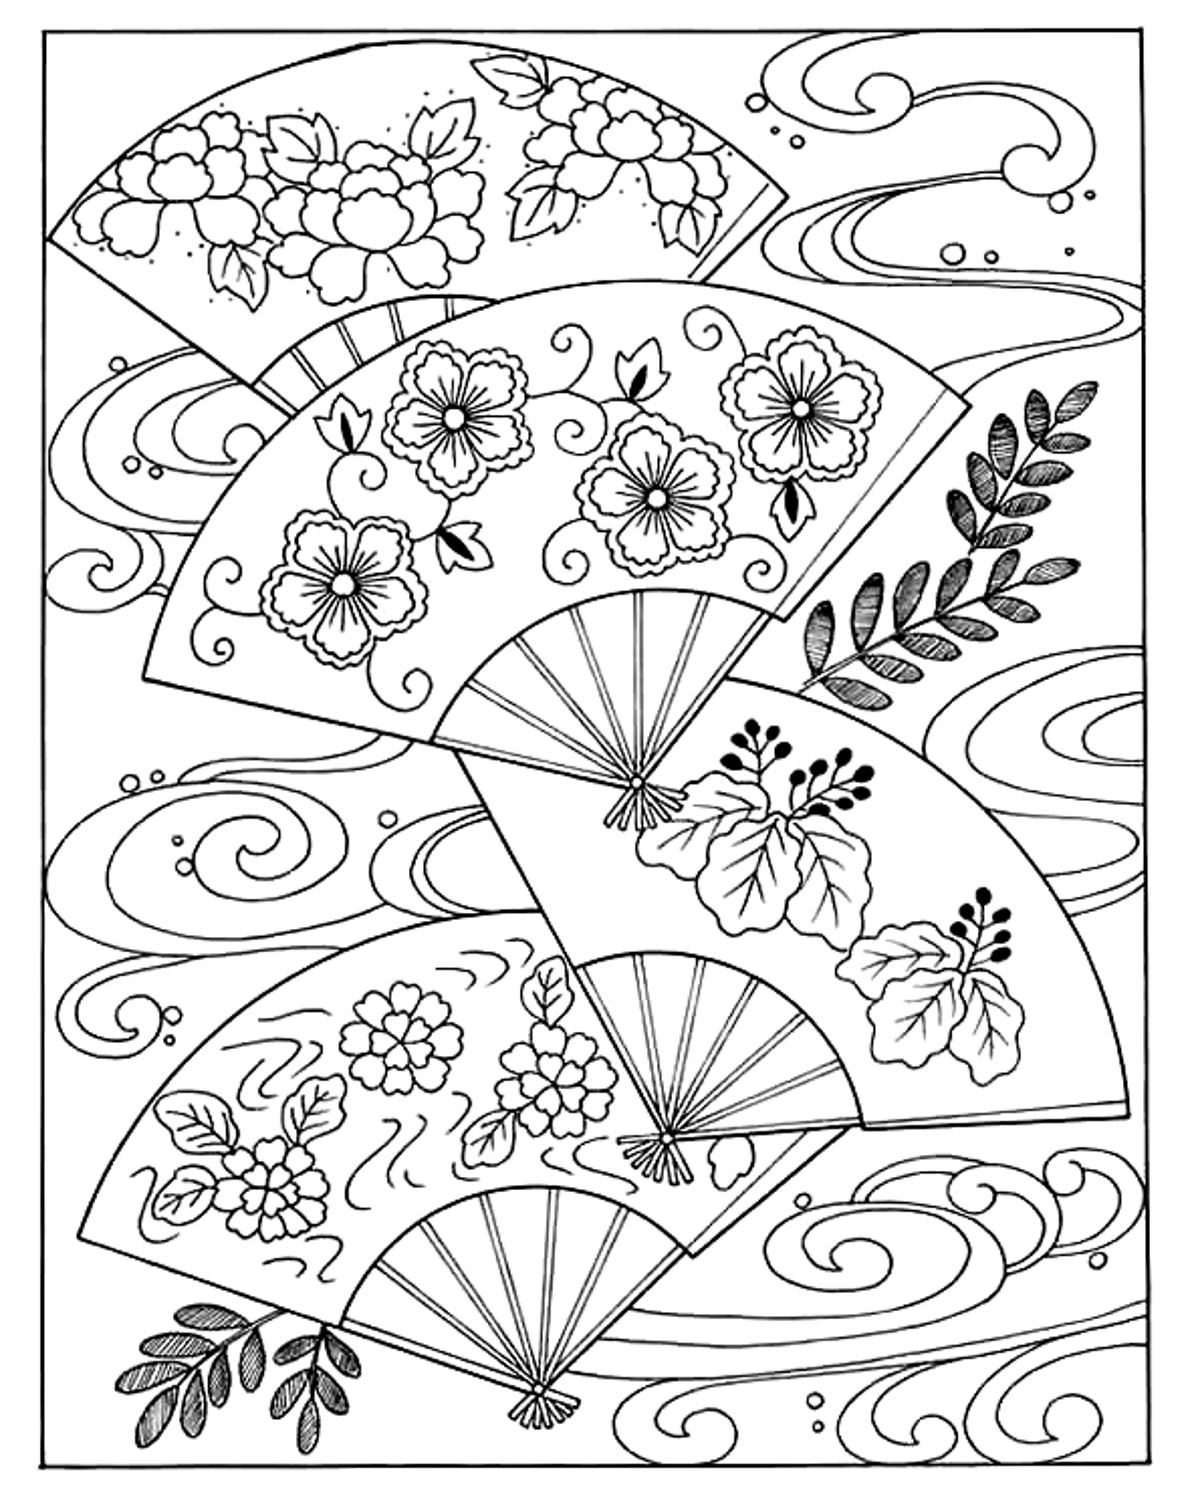 fan coloring page - japanese hand fan japan adult coloring pages